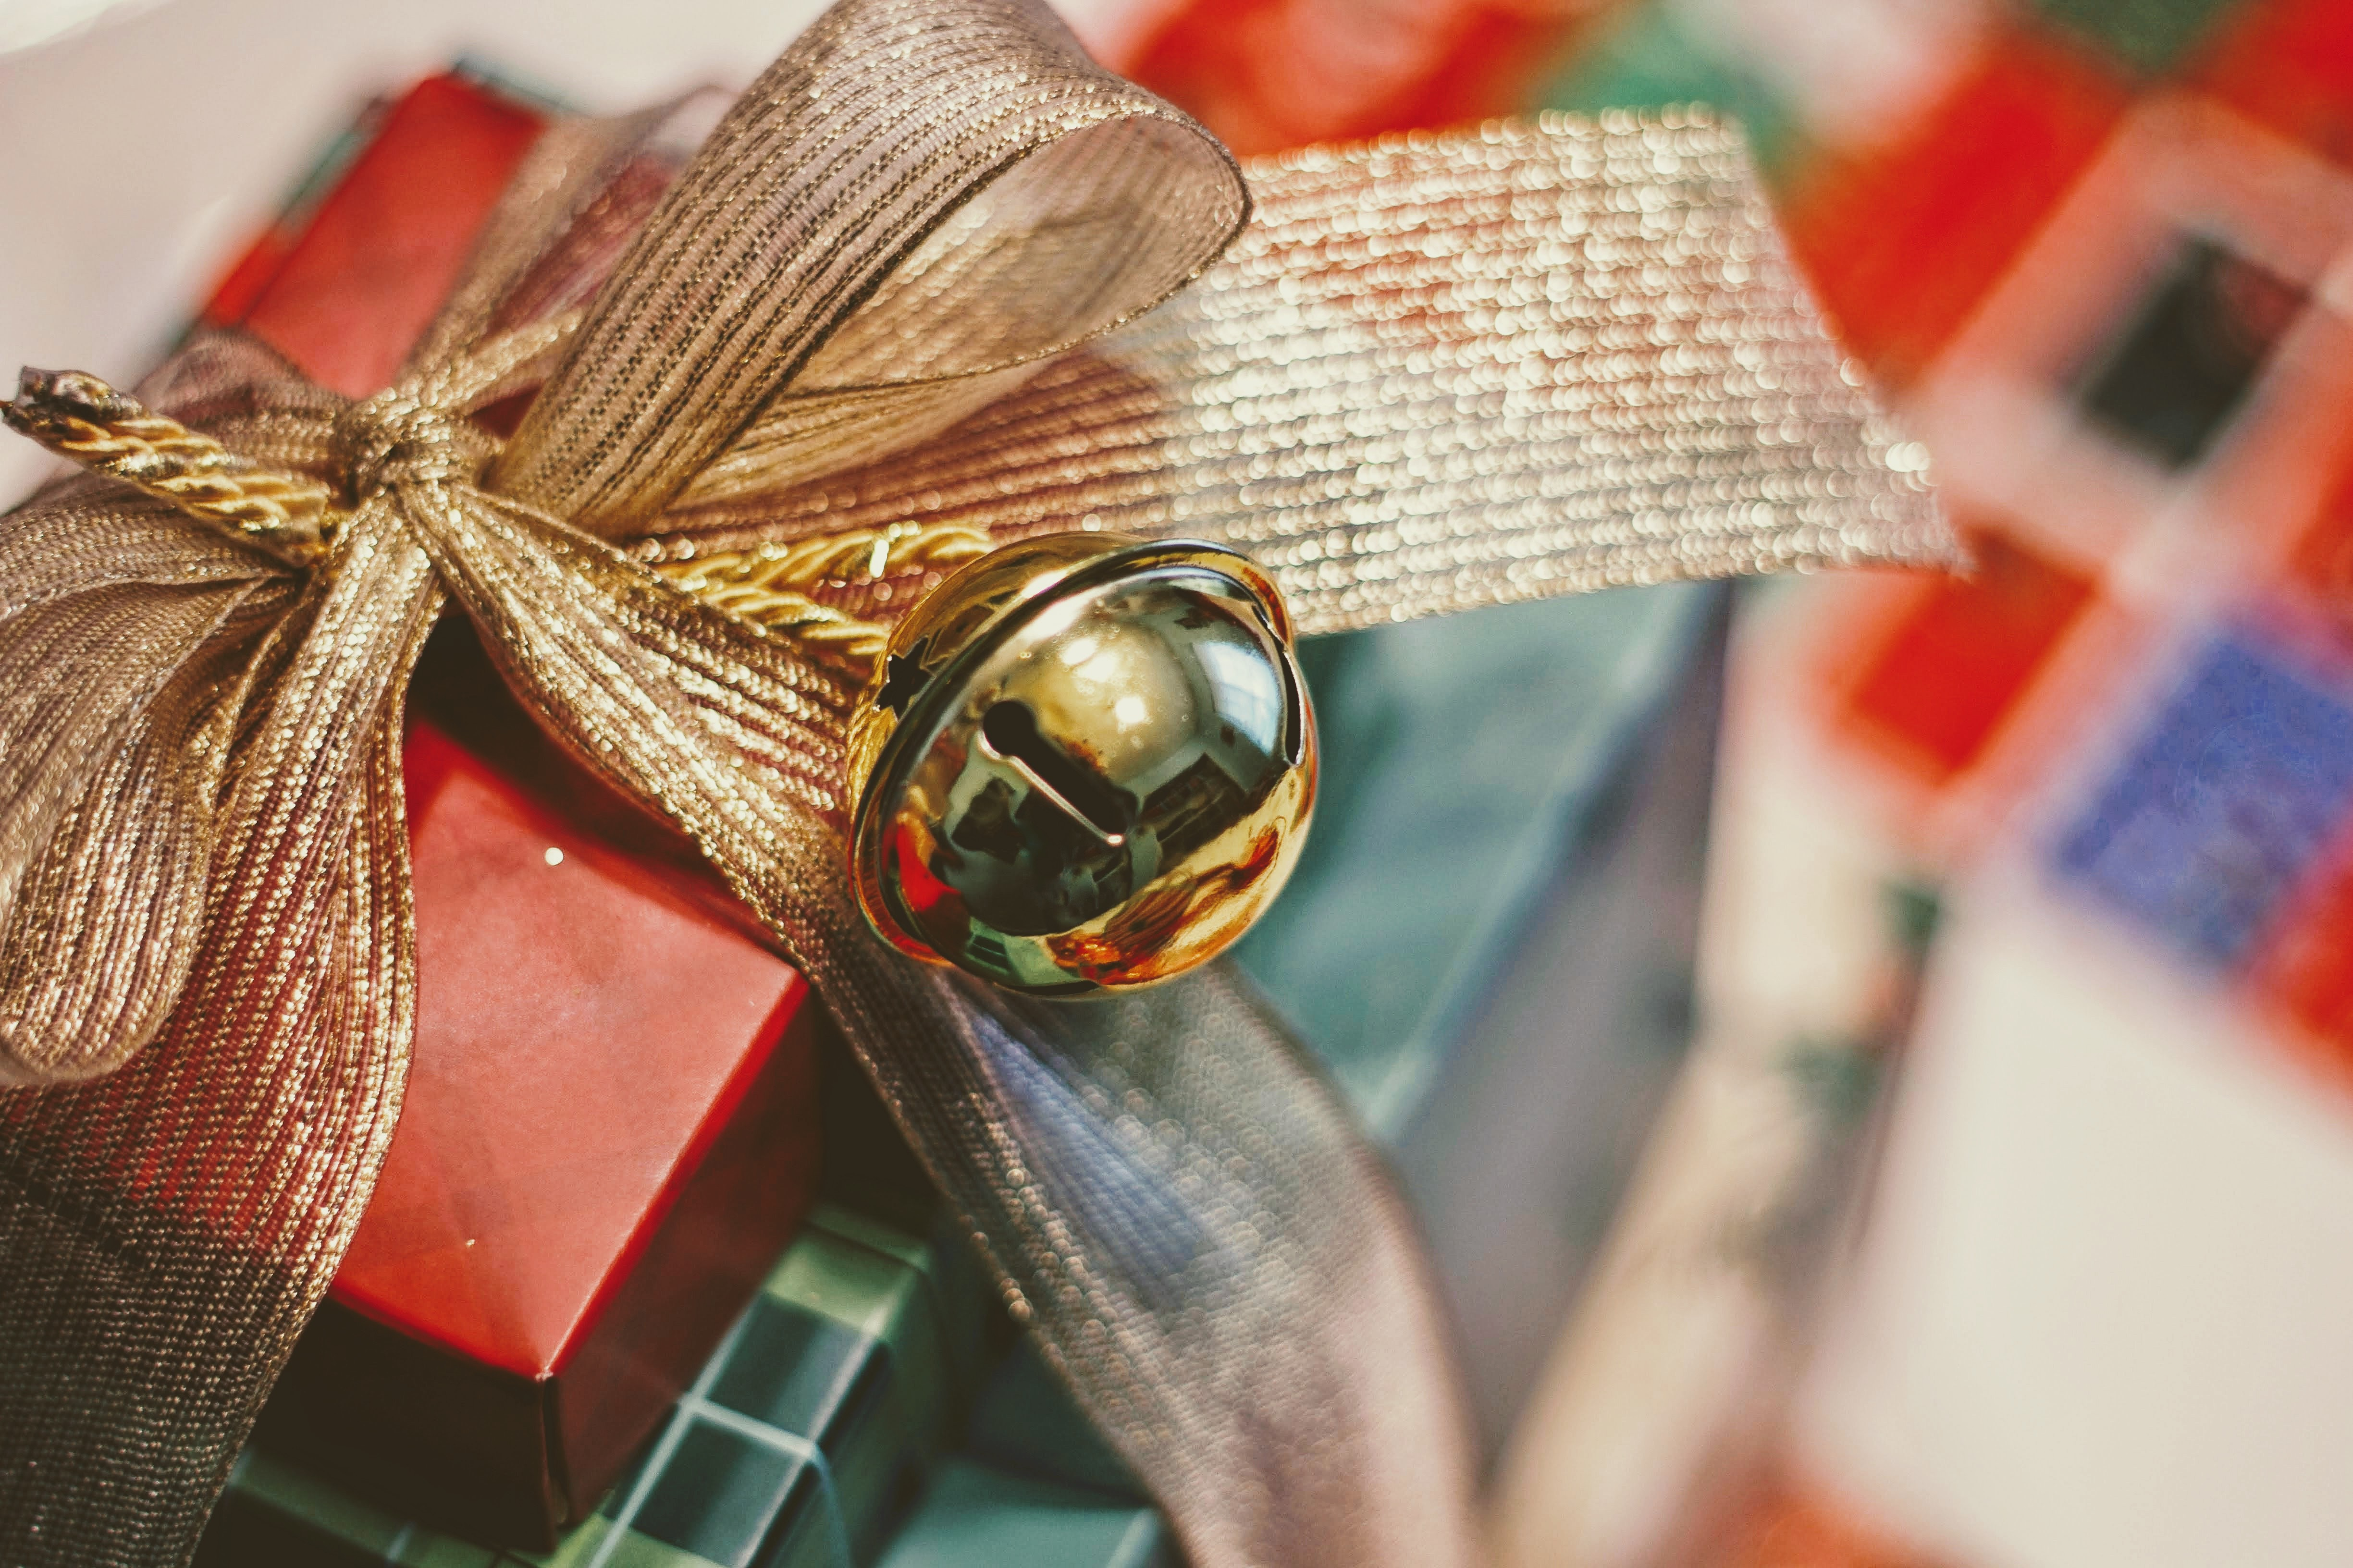 Christmas gifts wrapped in red and plaid paper, tied into a three-tier stack with a golden bell tied to the bow